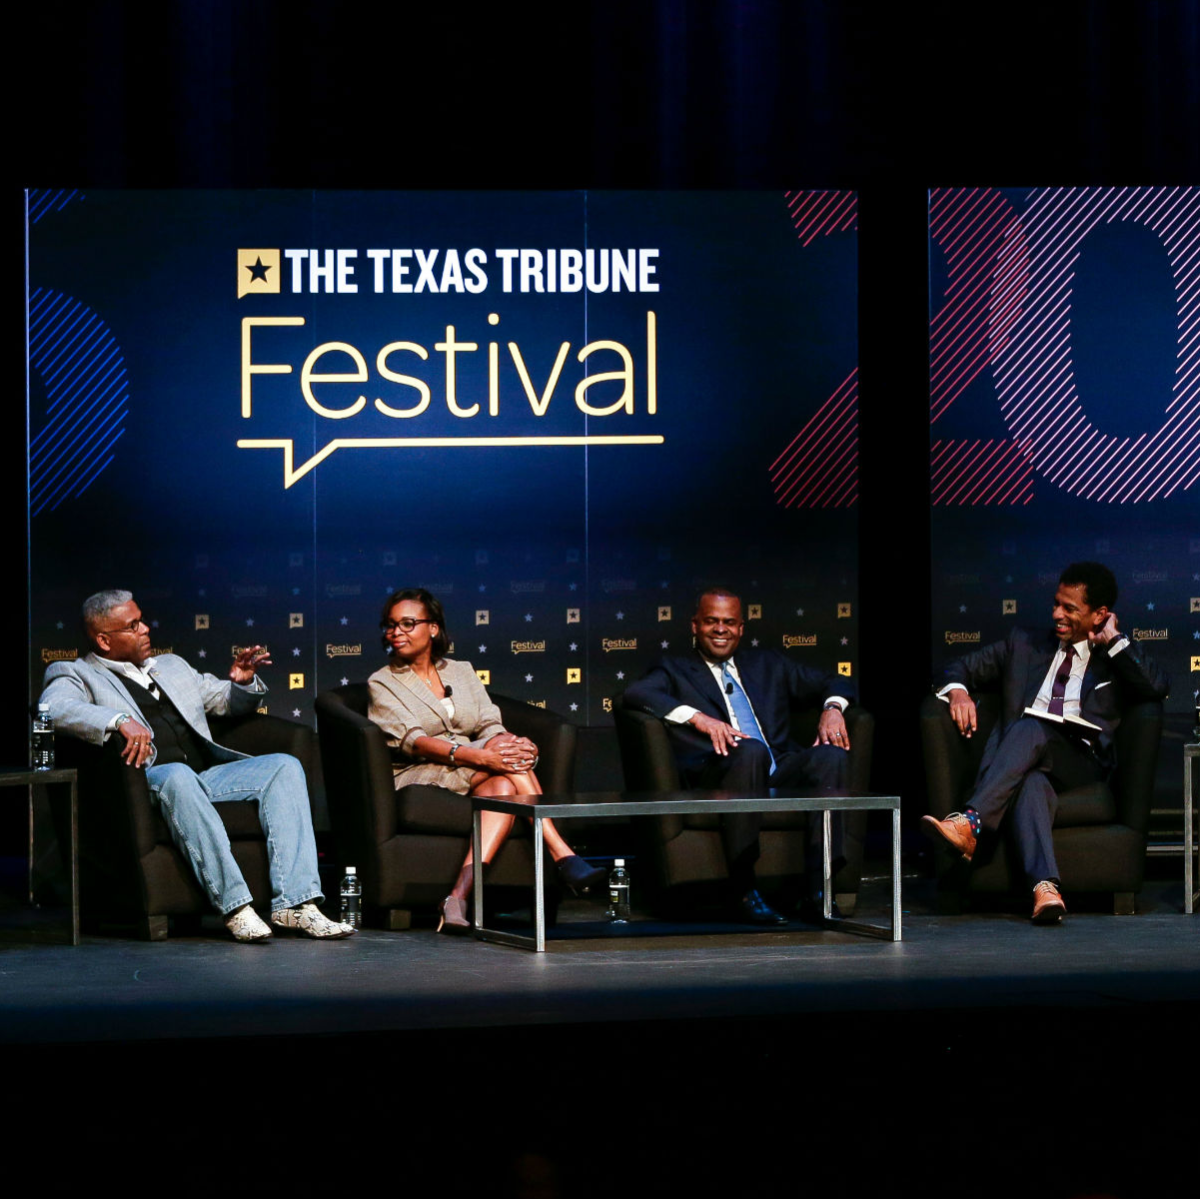 Texas Tribune Festival